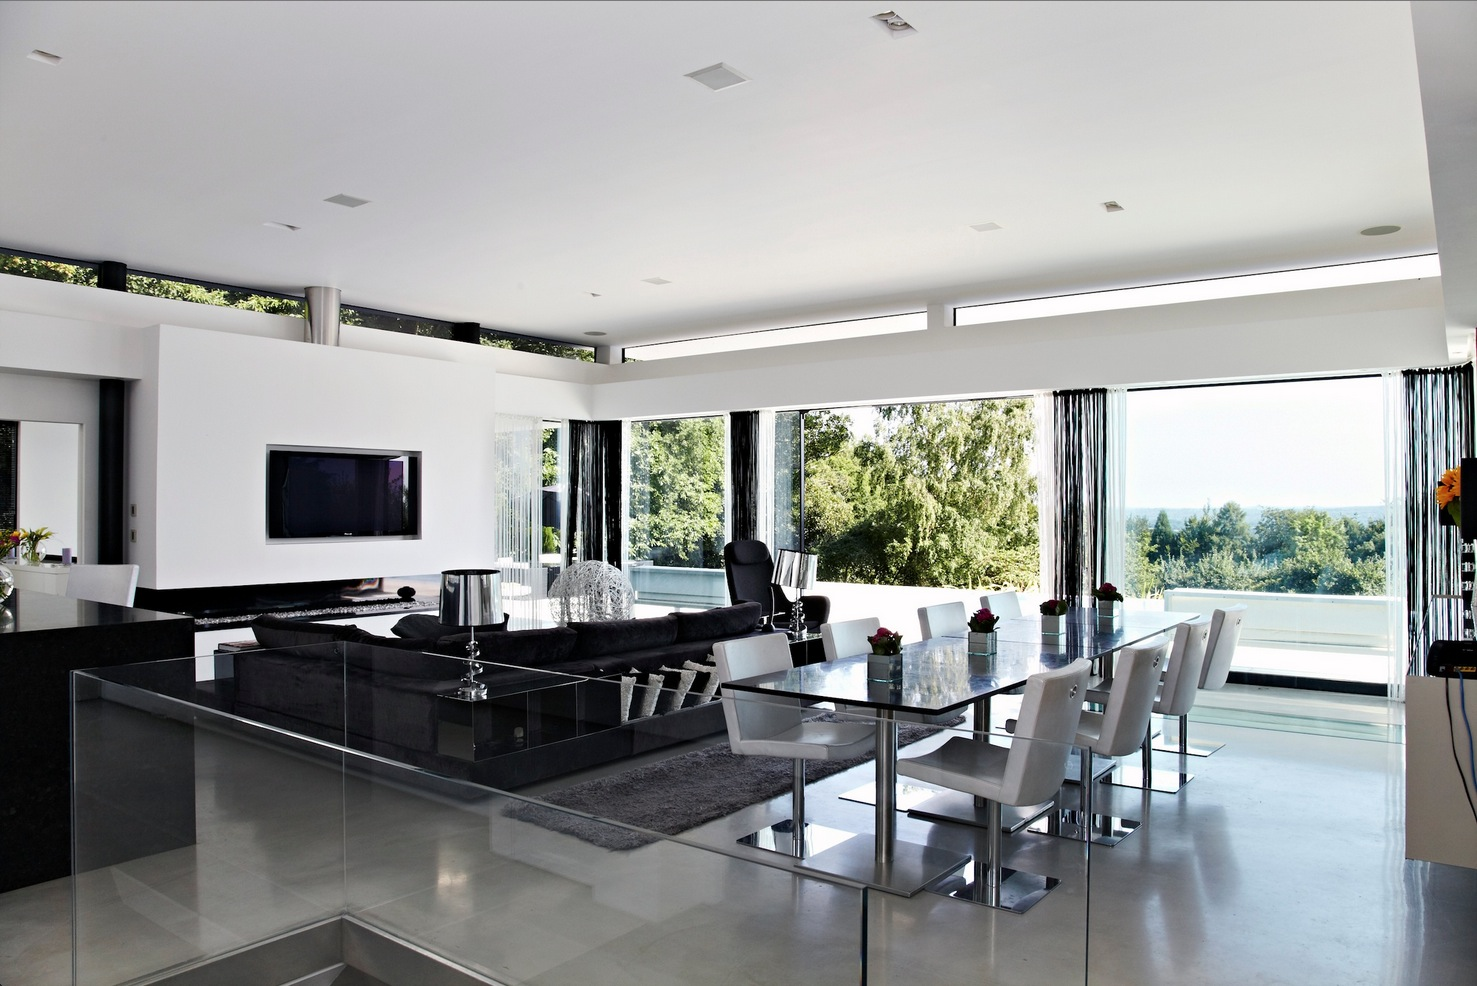 Interior House Designs Black And White Of Contemporary Home Open To Panoramic Views